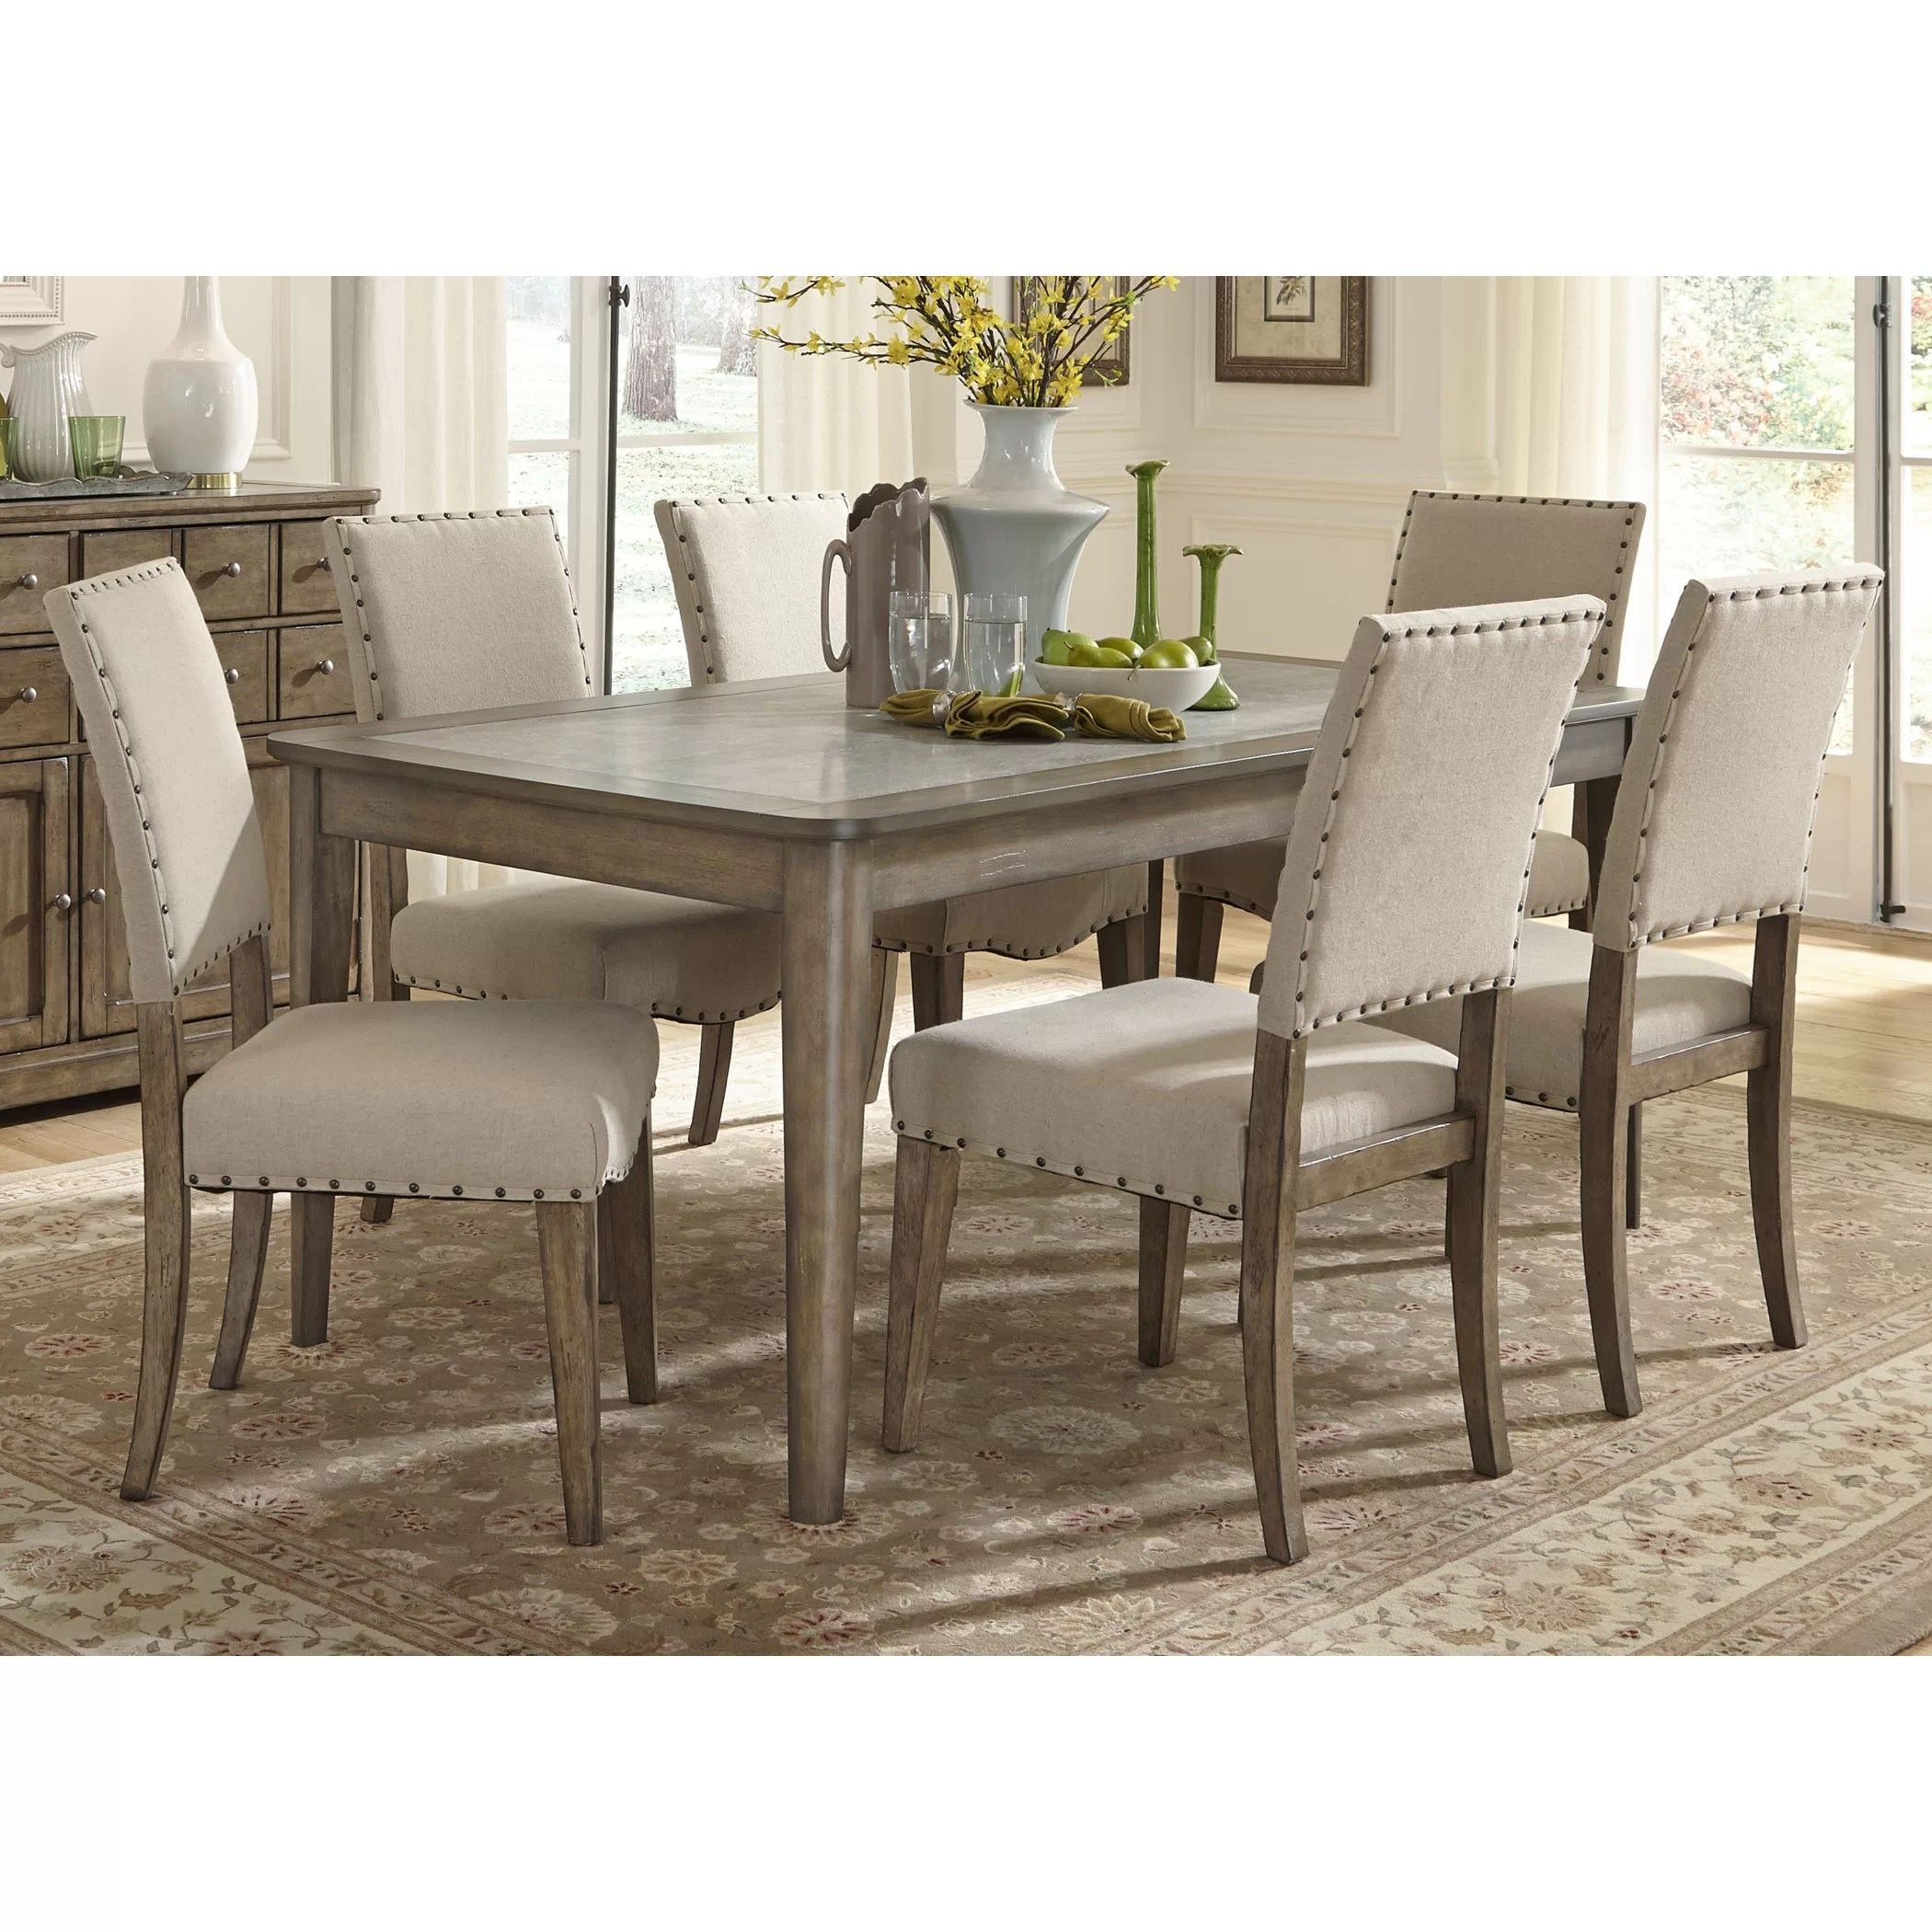 Dining Chairs Set Liberty Furniture 7 Piece Dining Set And Reviews Wayfair